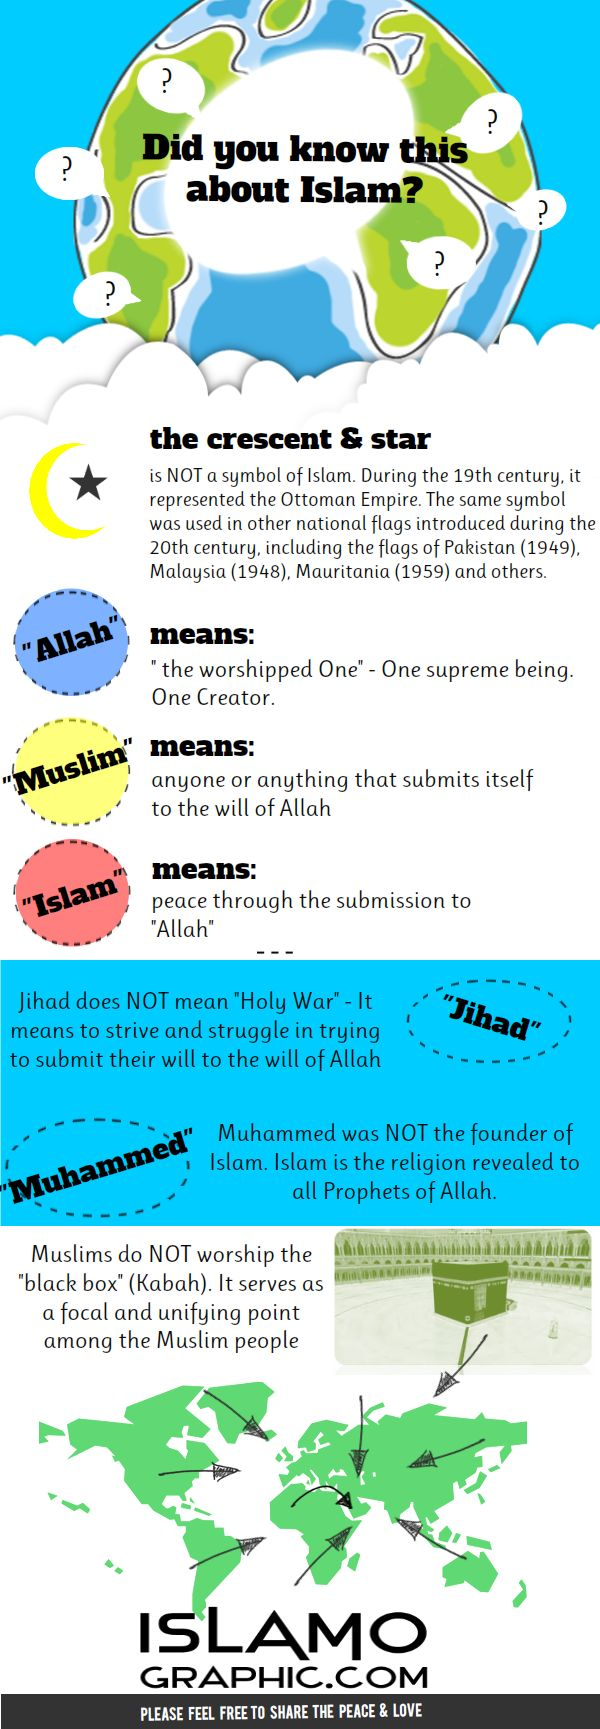 Did you know this about Islam